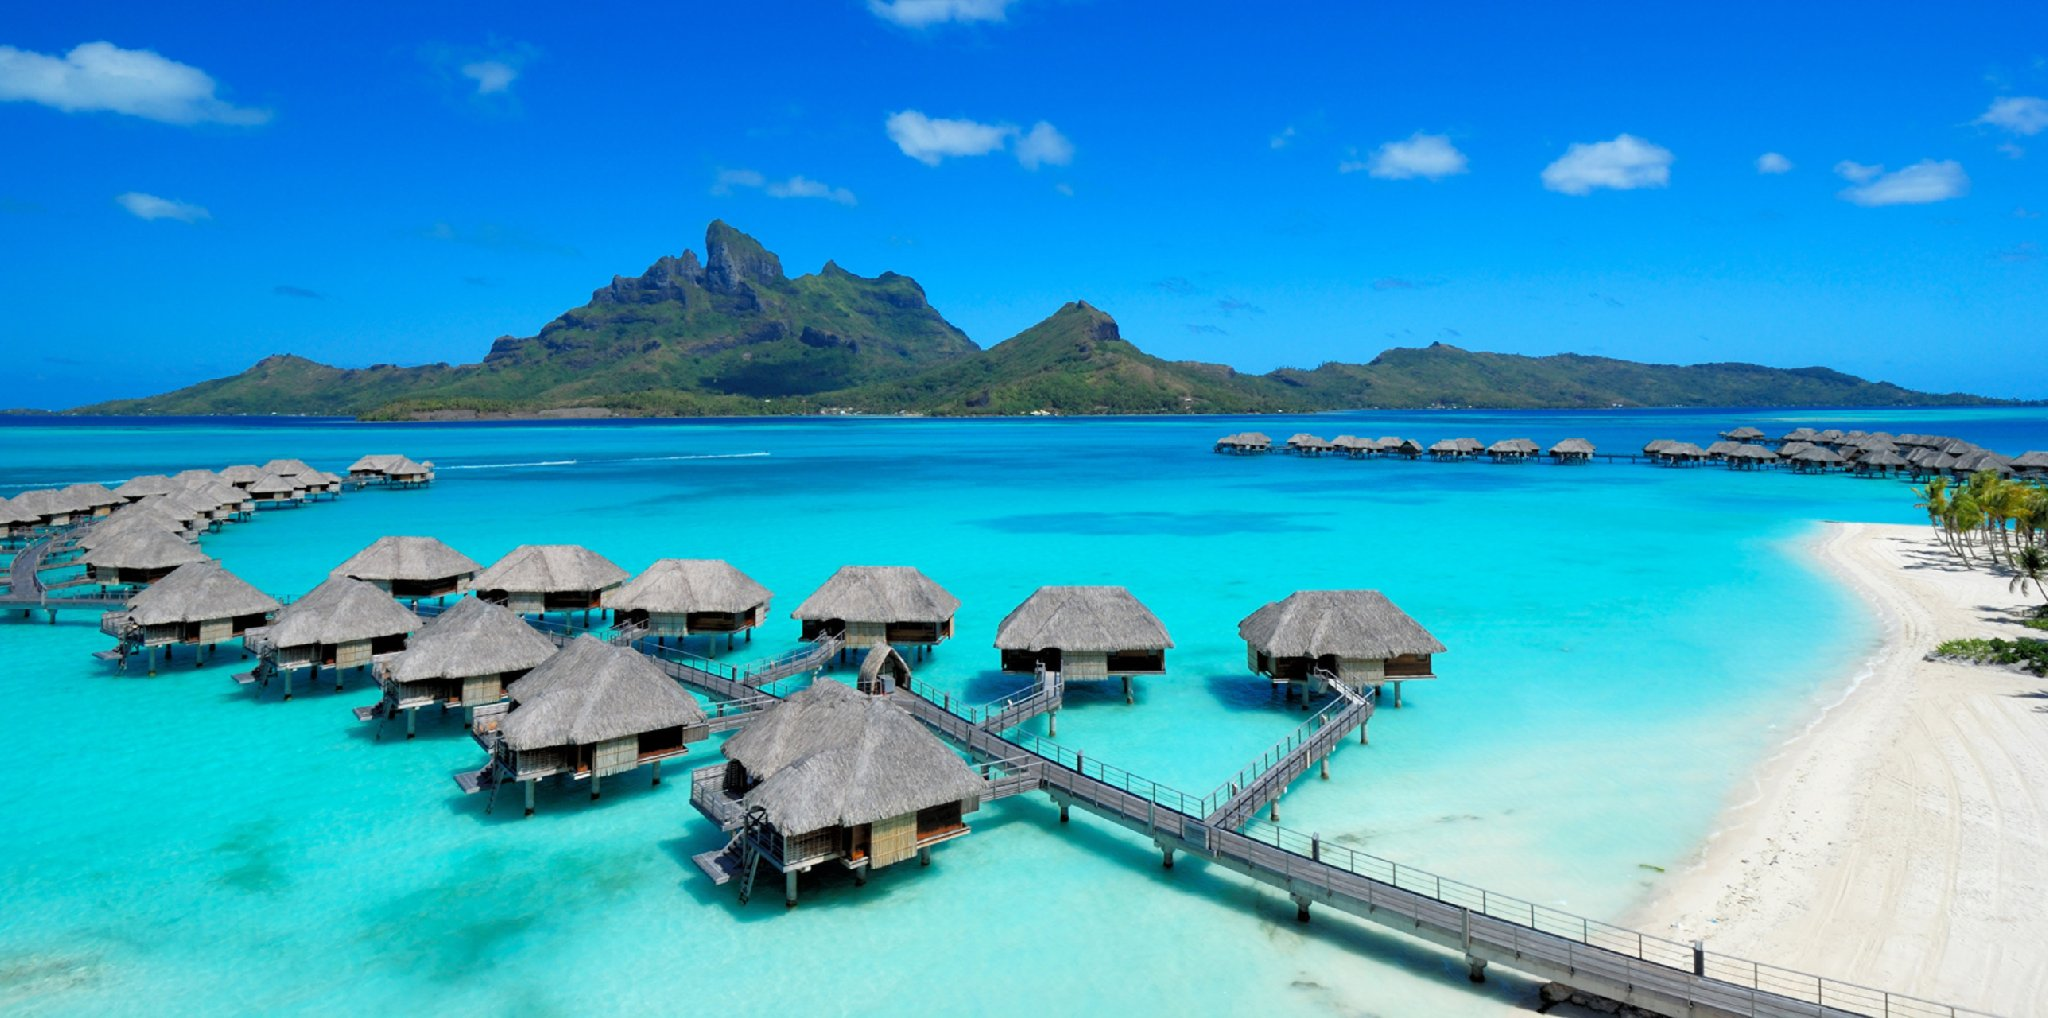 "Le Sofitel Bora Bora Marara Beach Resort, avec les deux autres Sofitel de Polynésie, a été racheté par le fonds d'investissement Grey Investment Group, qui engage un partenariat ""de long terme"" avec AccorHotels pour les gérer."